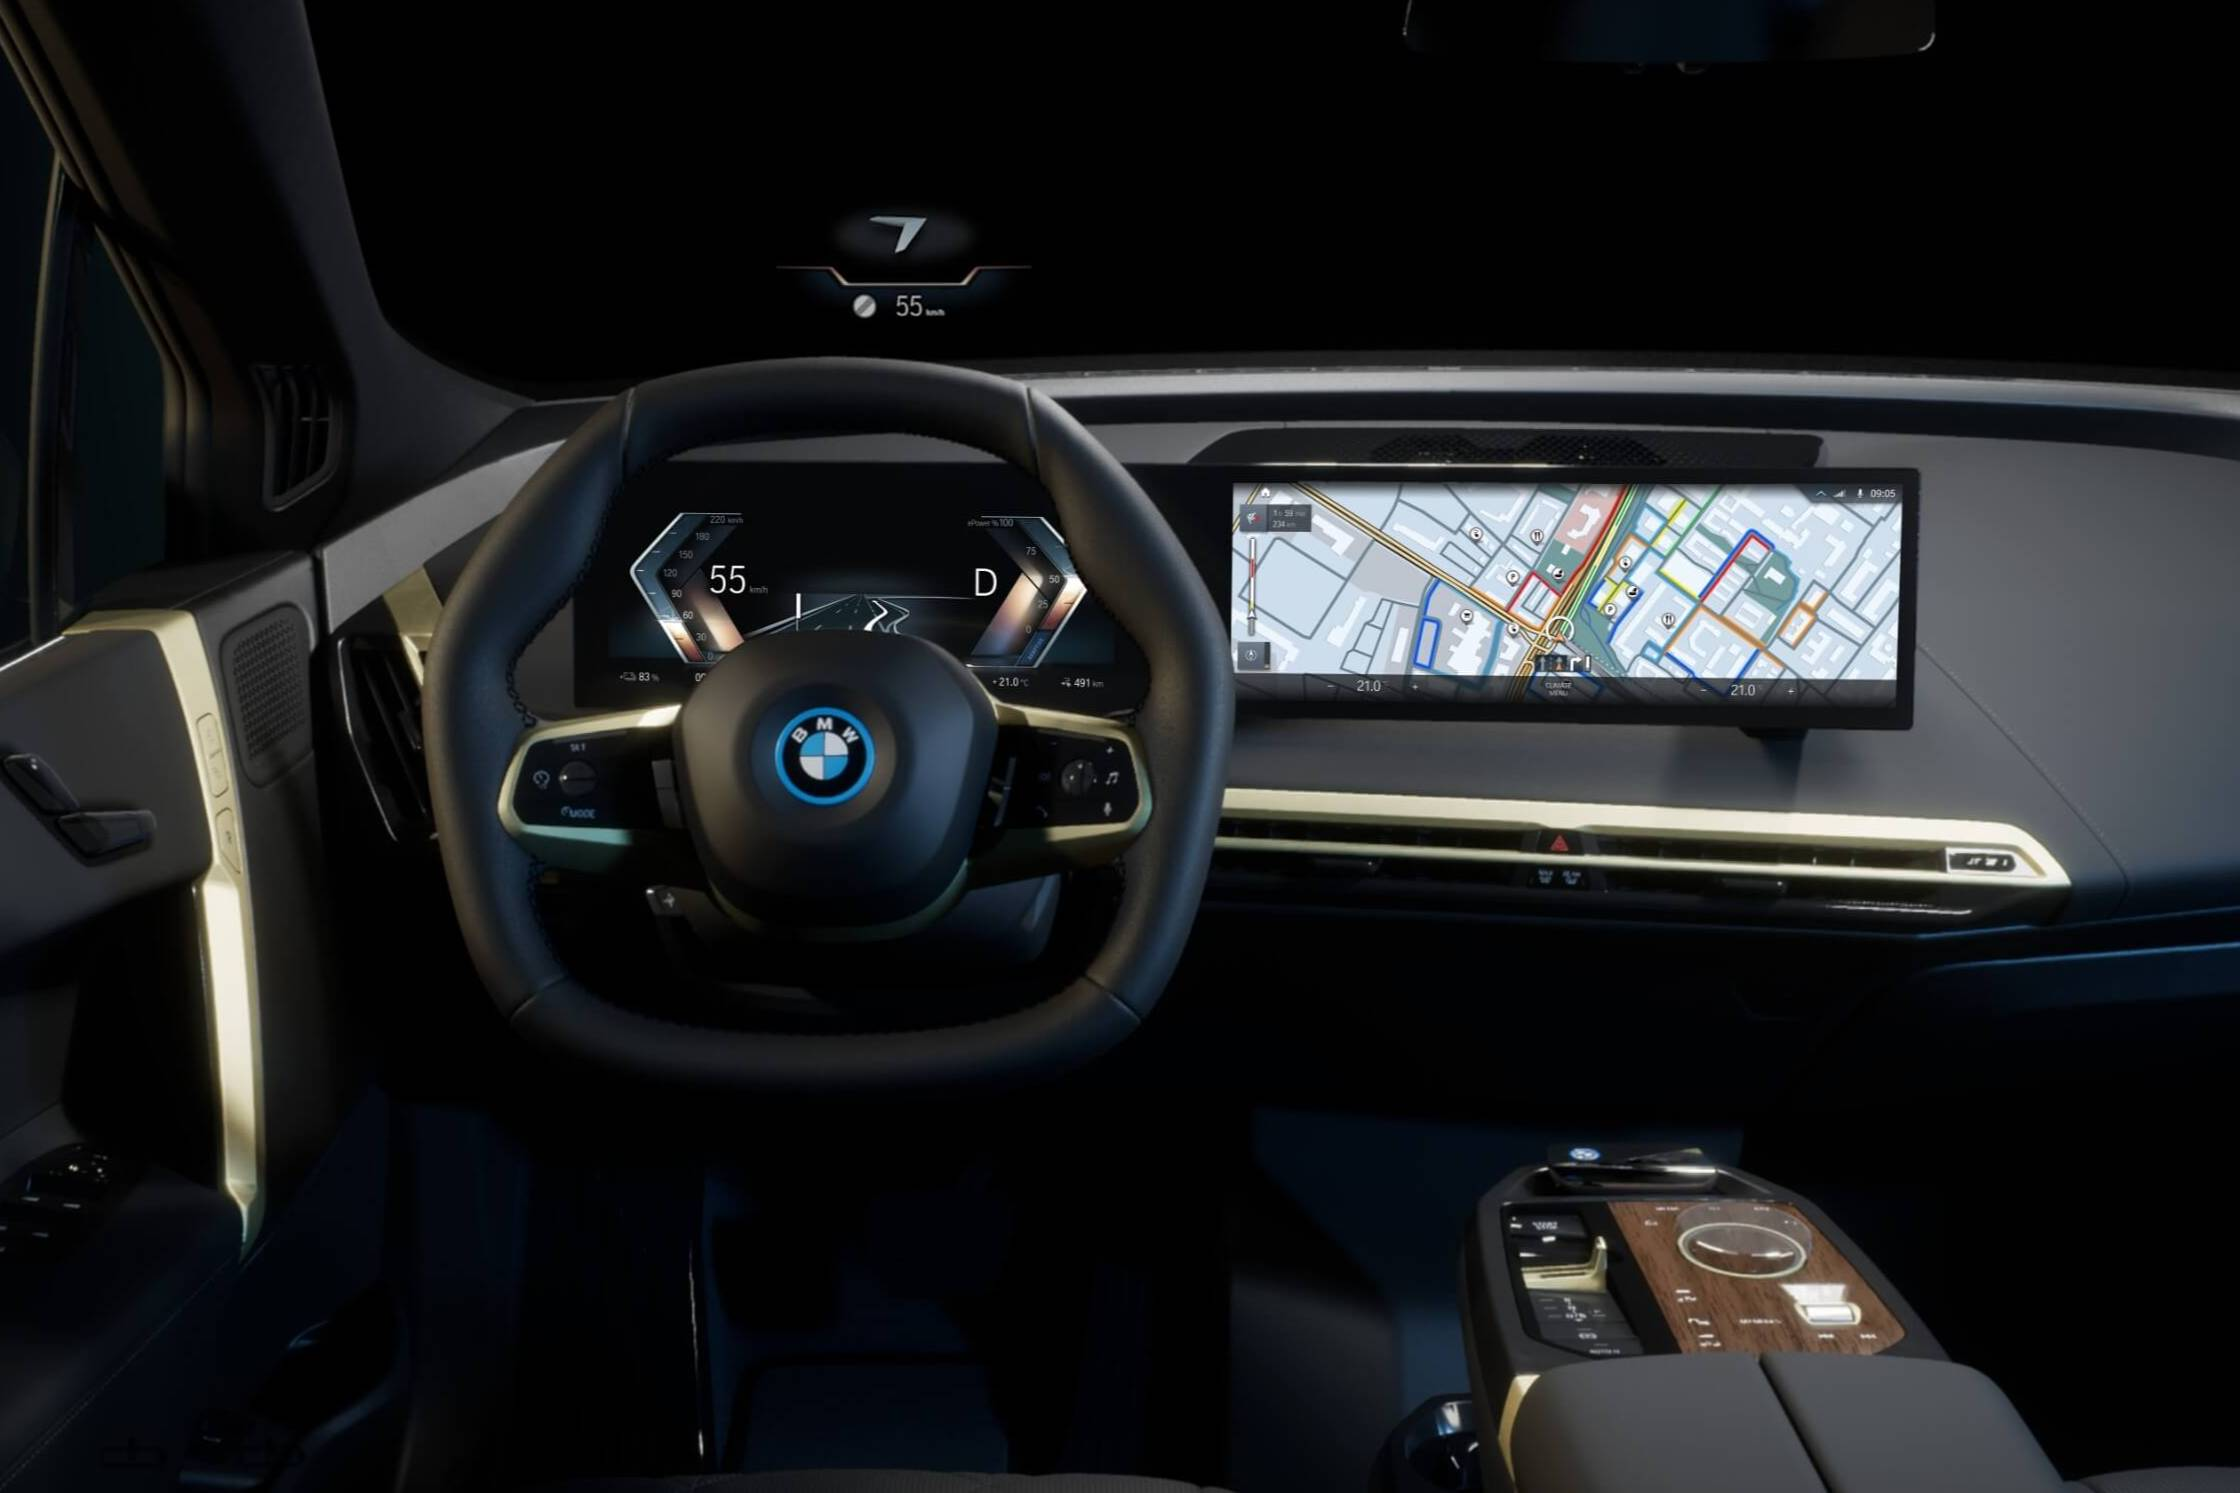 BMW Maps on Operating System 8